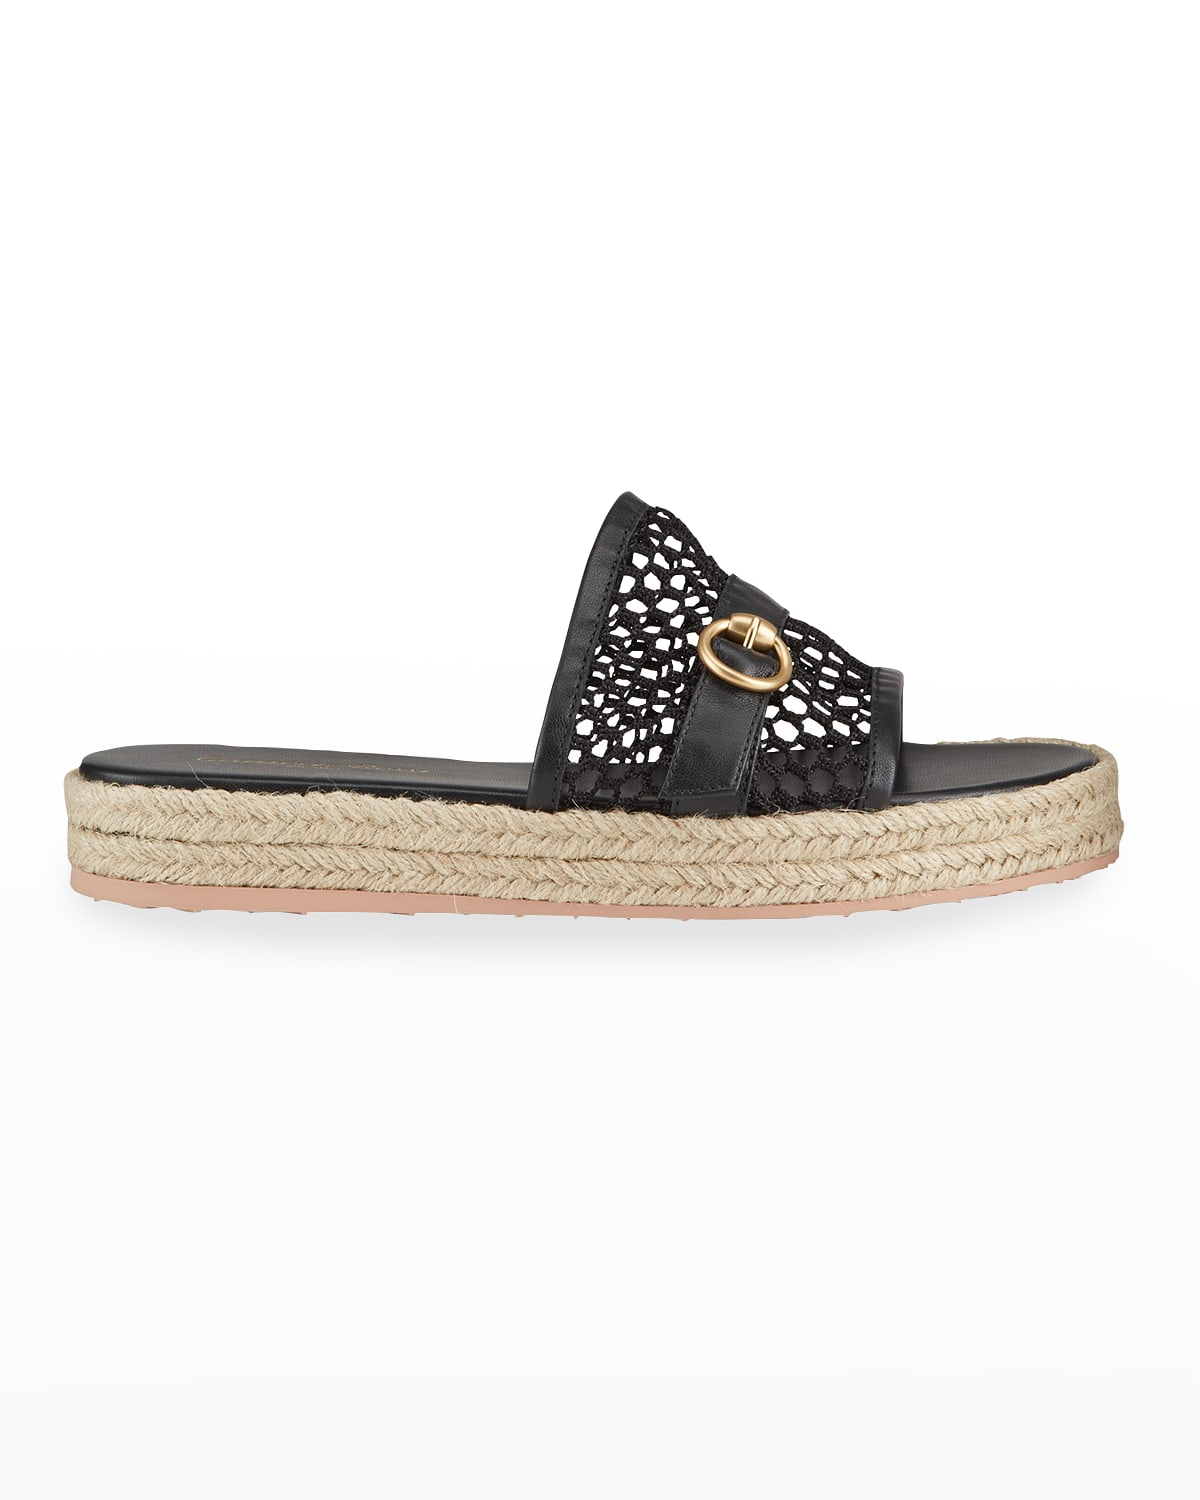 Napa Netted Flat Espadrille Sandals